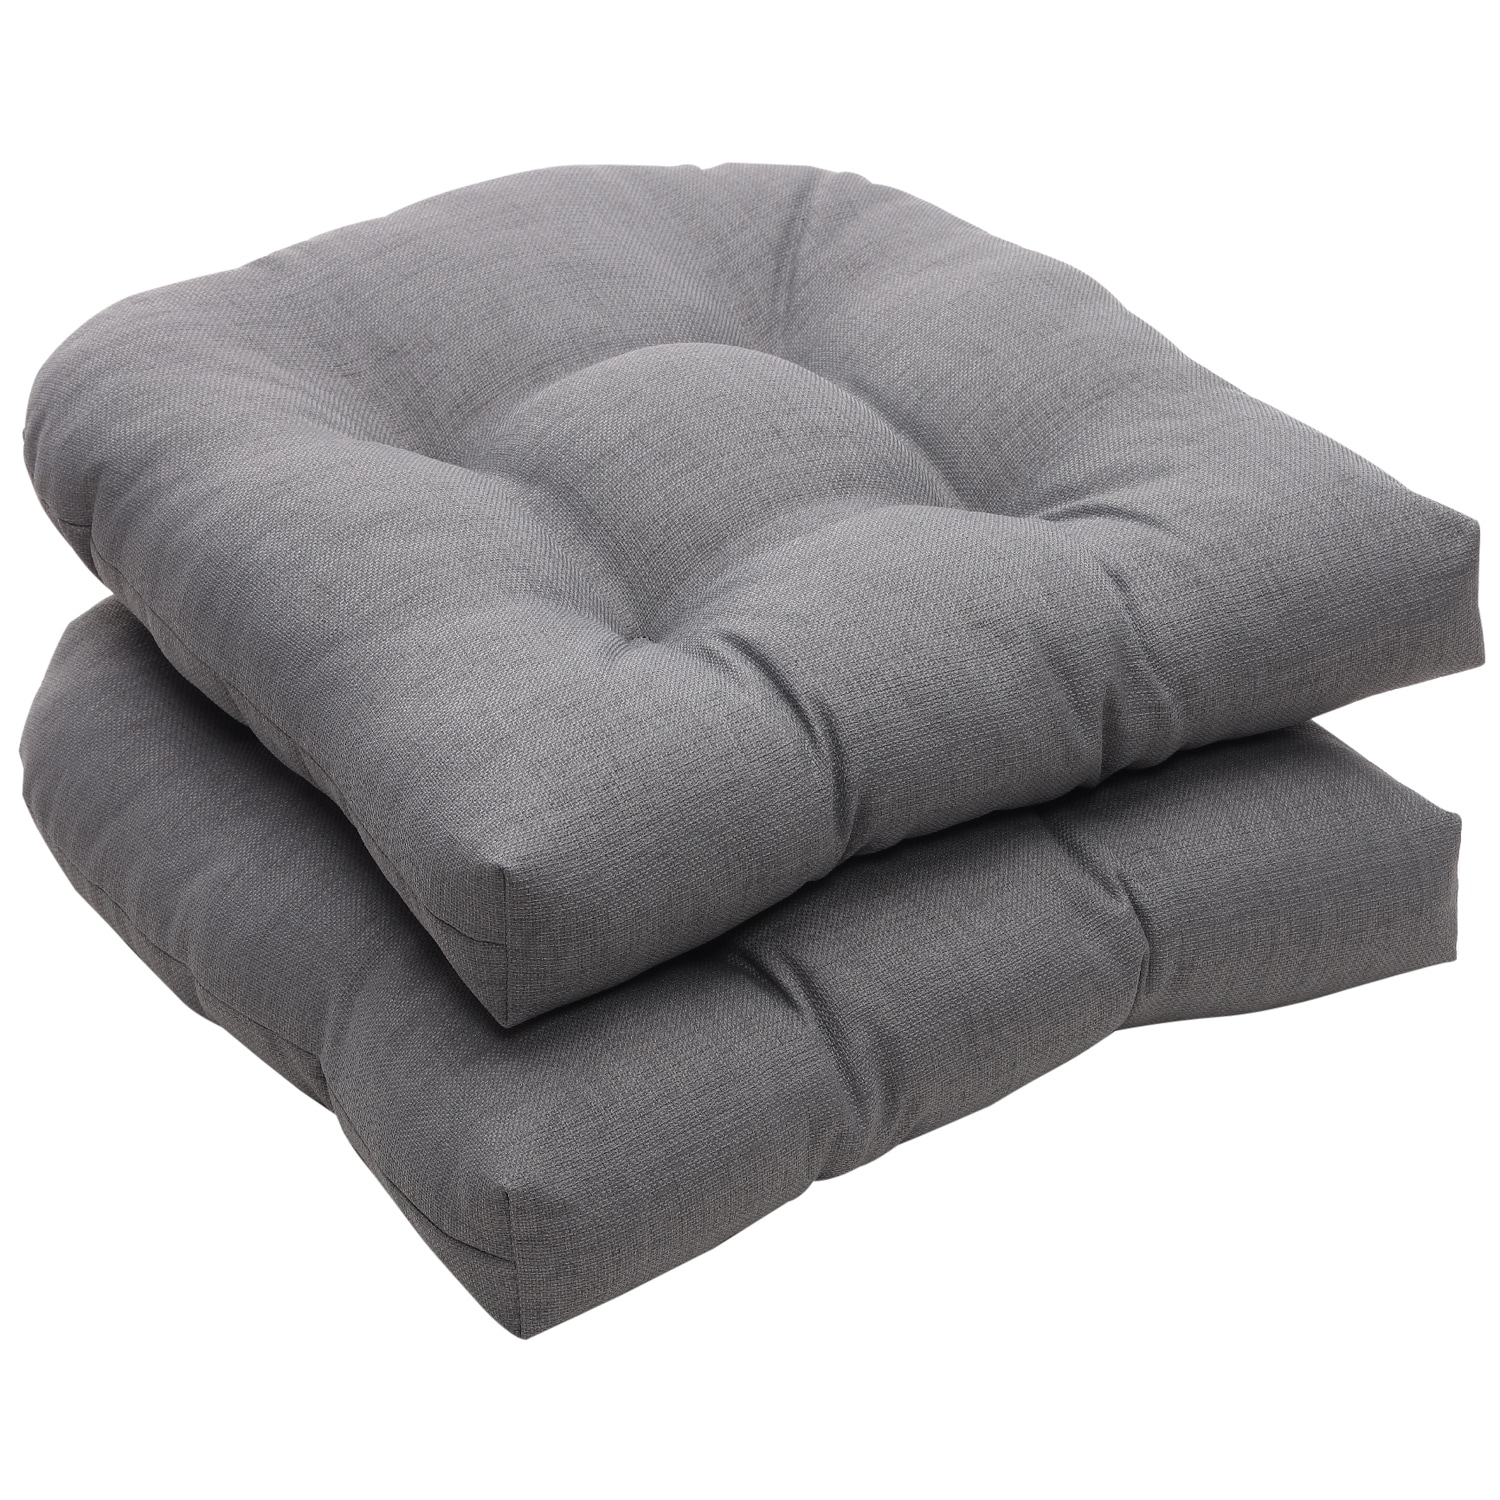 Outdoor Gray Textured Solid Wicker Seat Cushions (Set of 2) - 14095782 ...